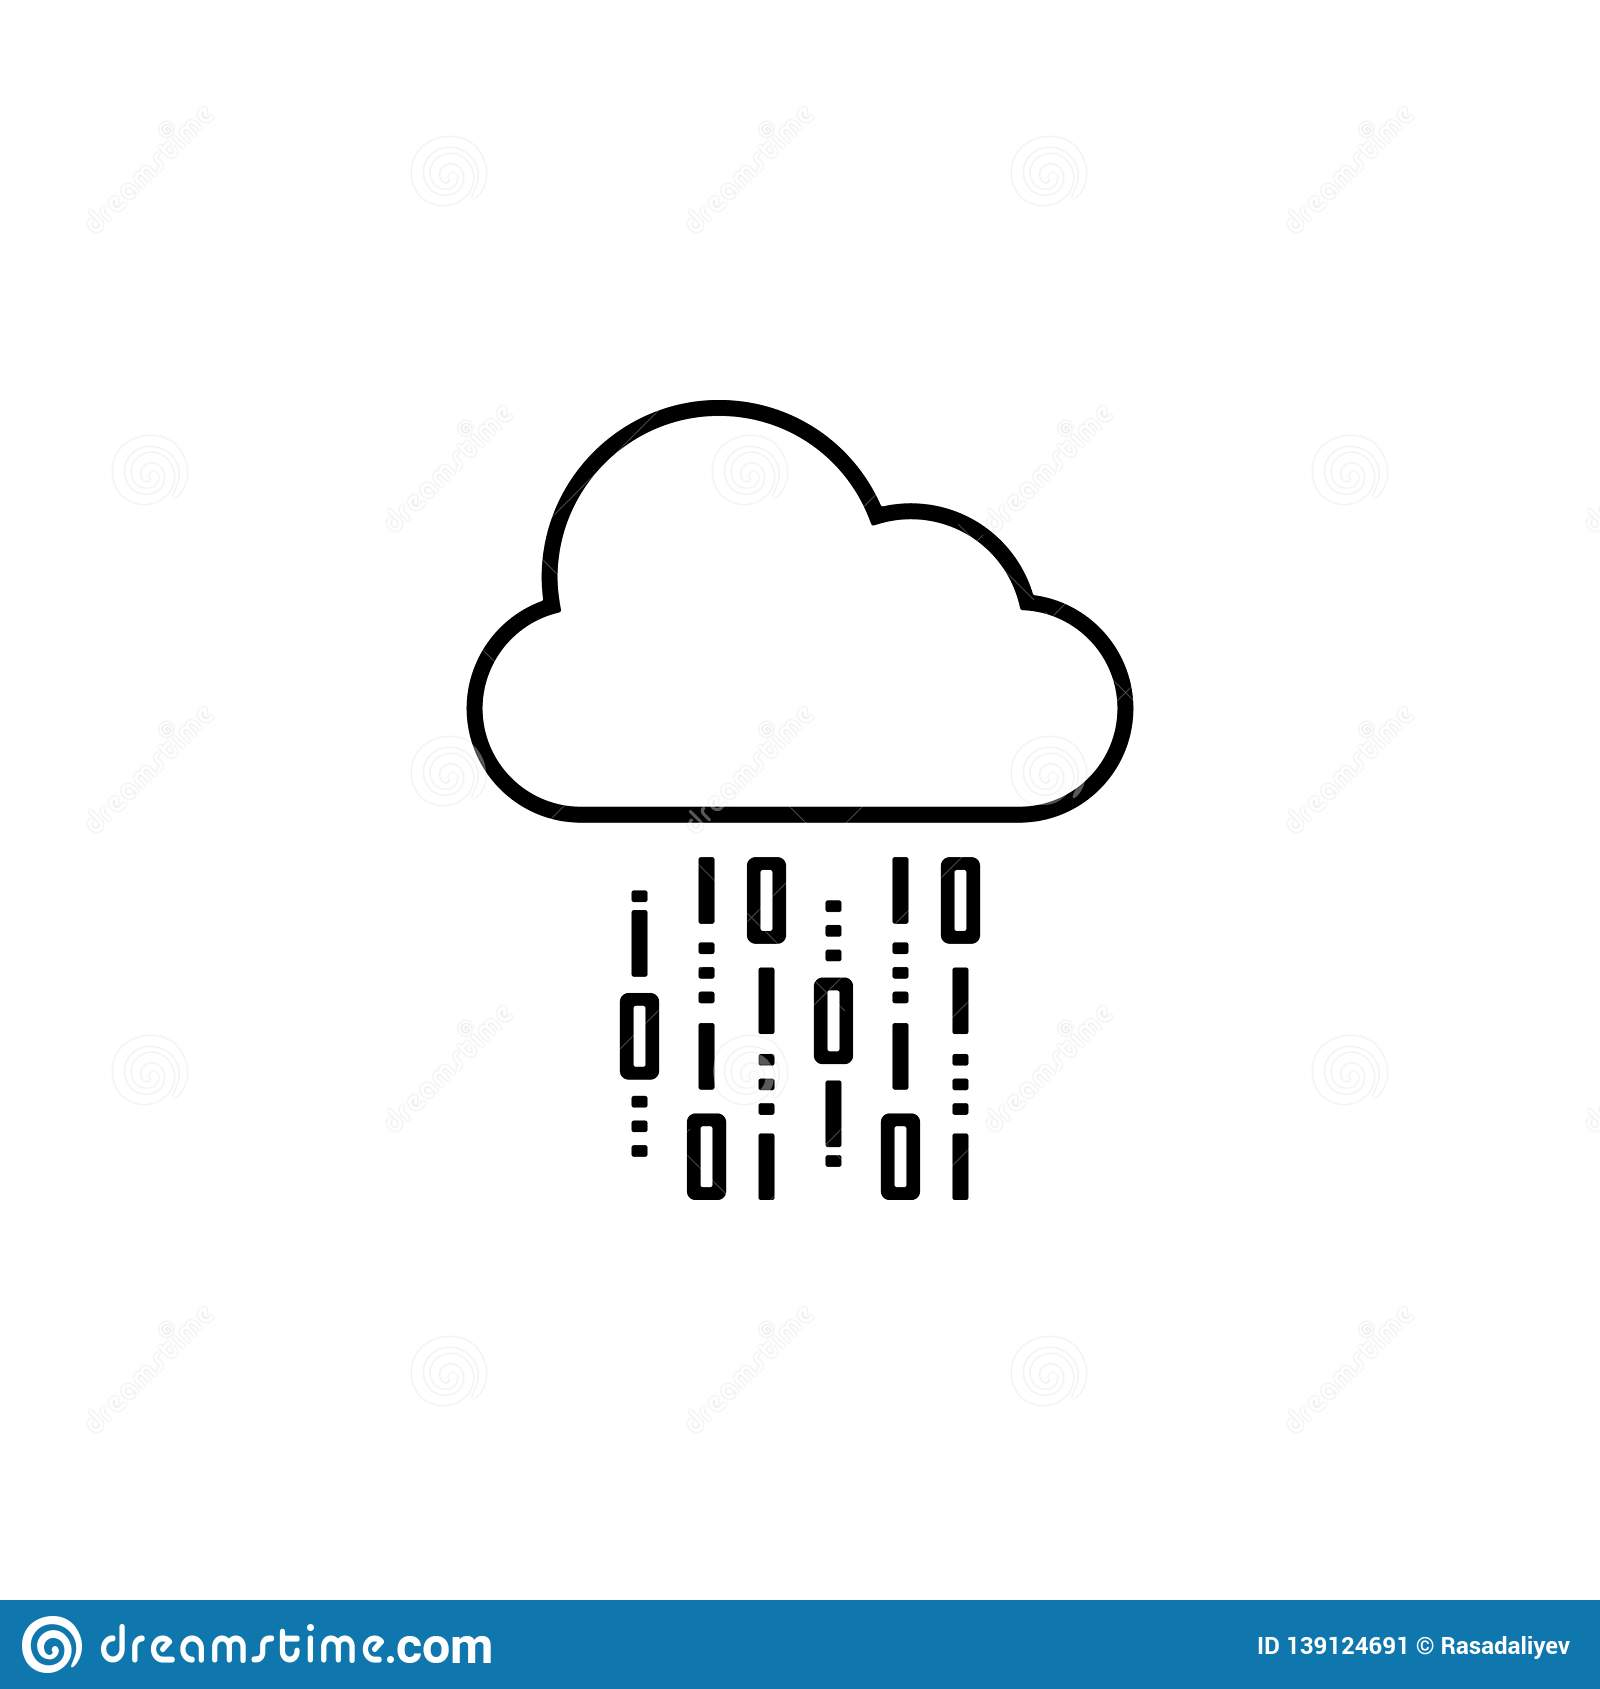 cloud, computing, data, network icon. Element of future pack for mobile concept and web apps icon. Thin line icon for website